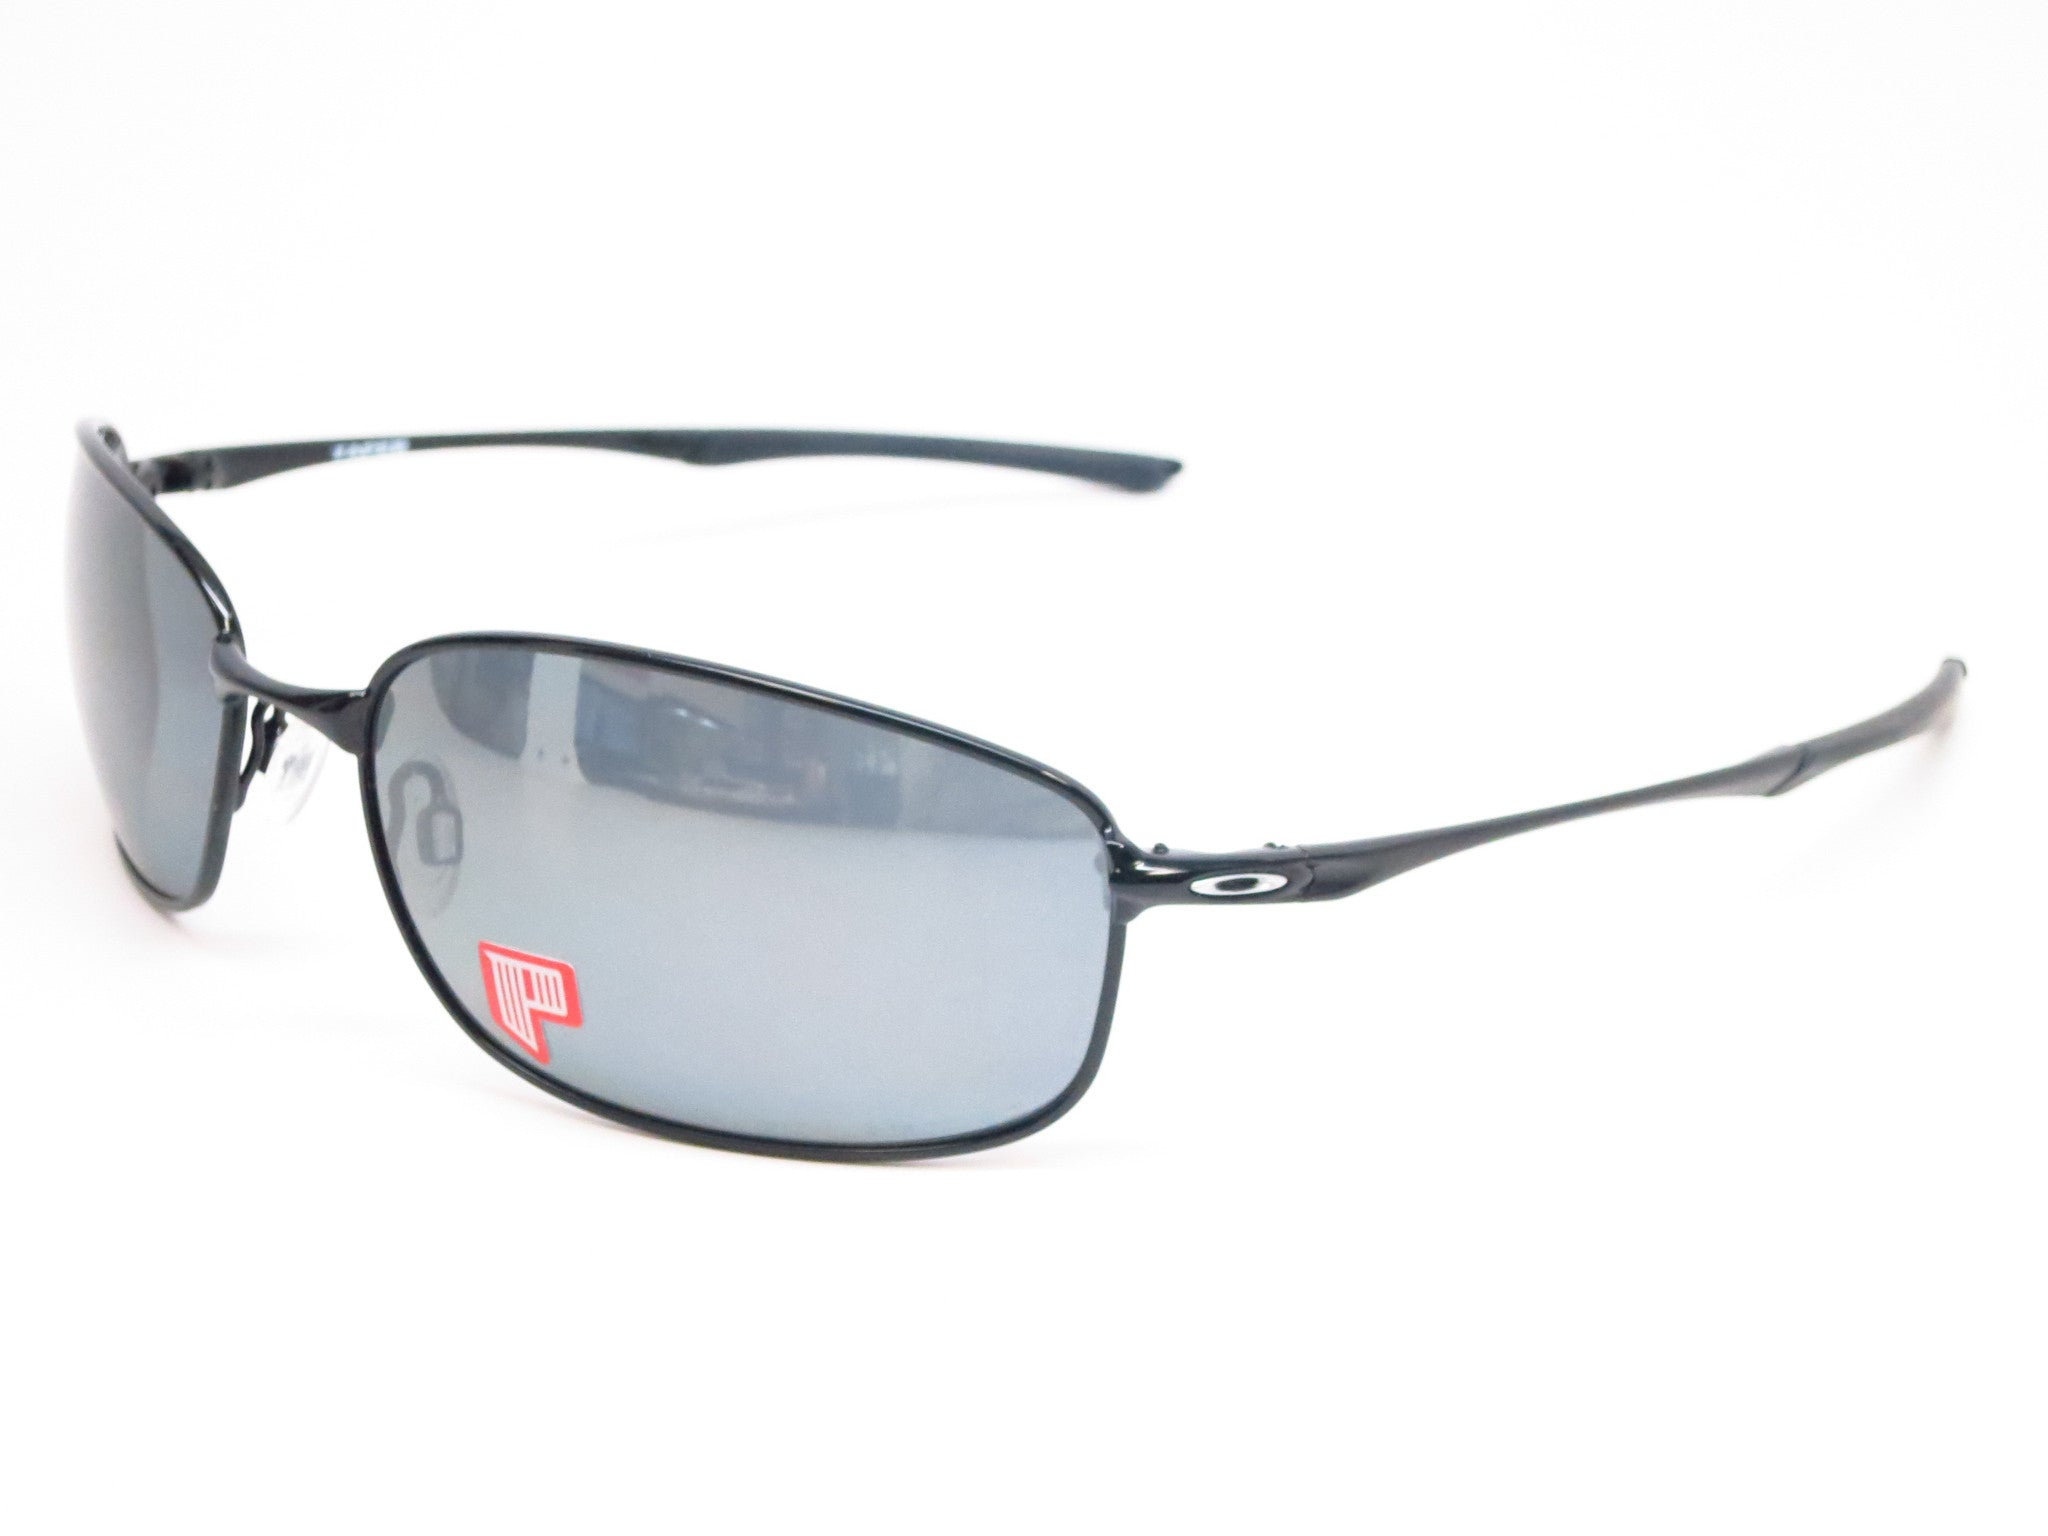 aed15d3bb8b Oakley Taper OO4074-04 Polished Black Polarized Sunglasses - Eye Heart  Shades - Oakley ...